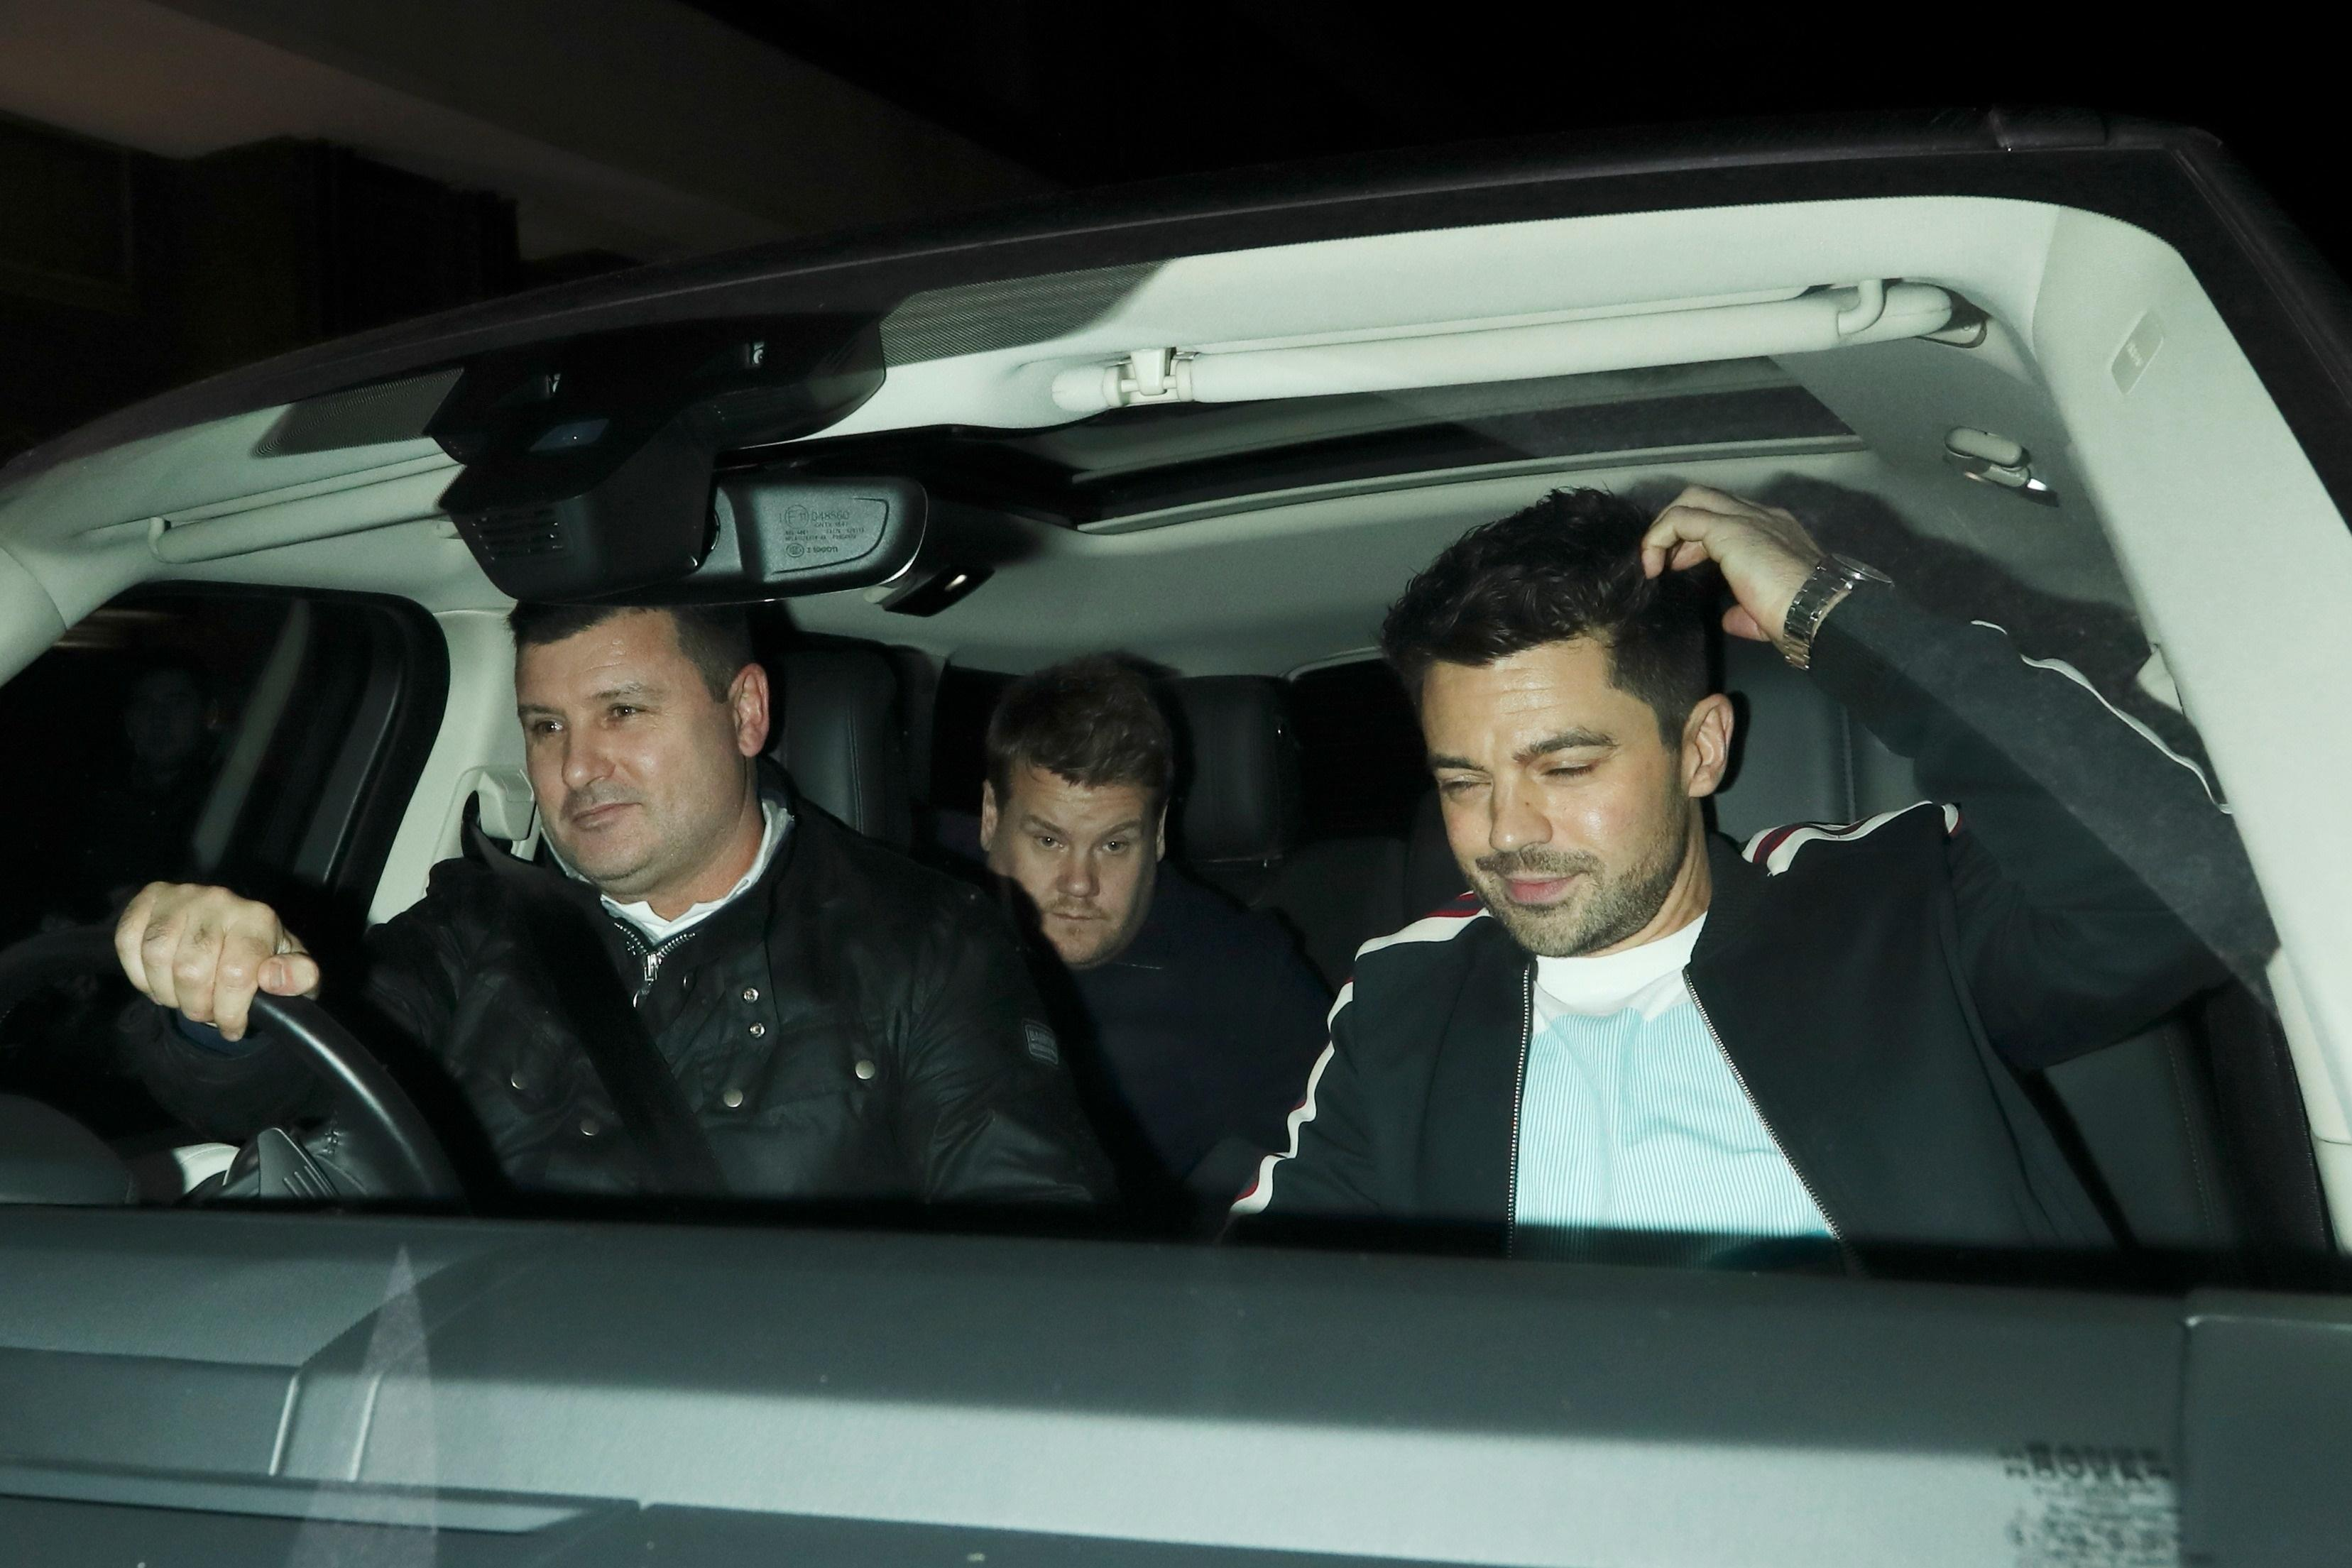 James Corden and Dominic Cooper reunite for a boozy night out with James' wife Julia